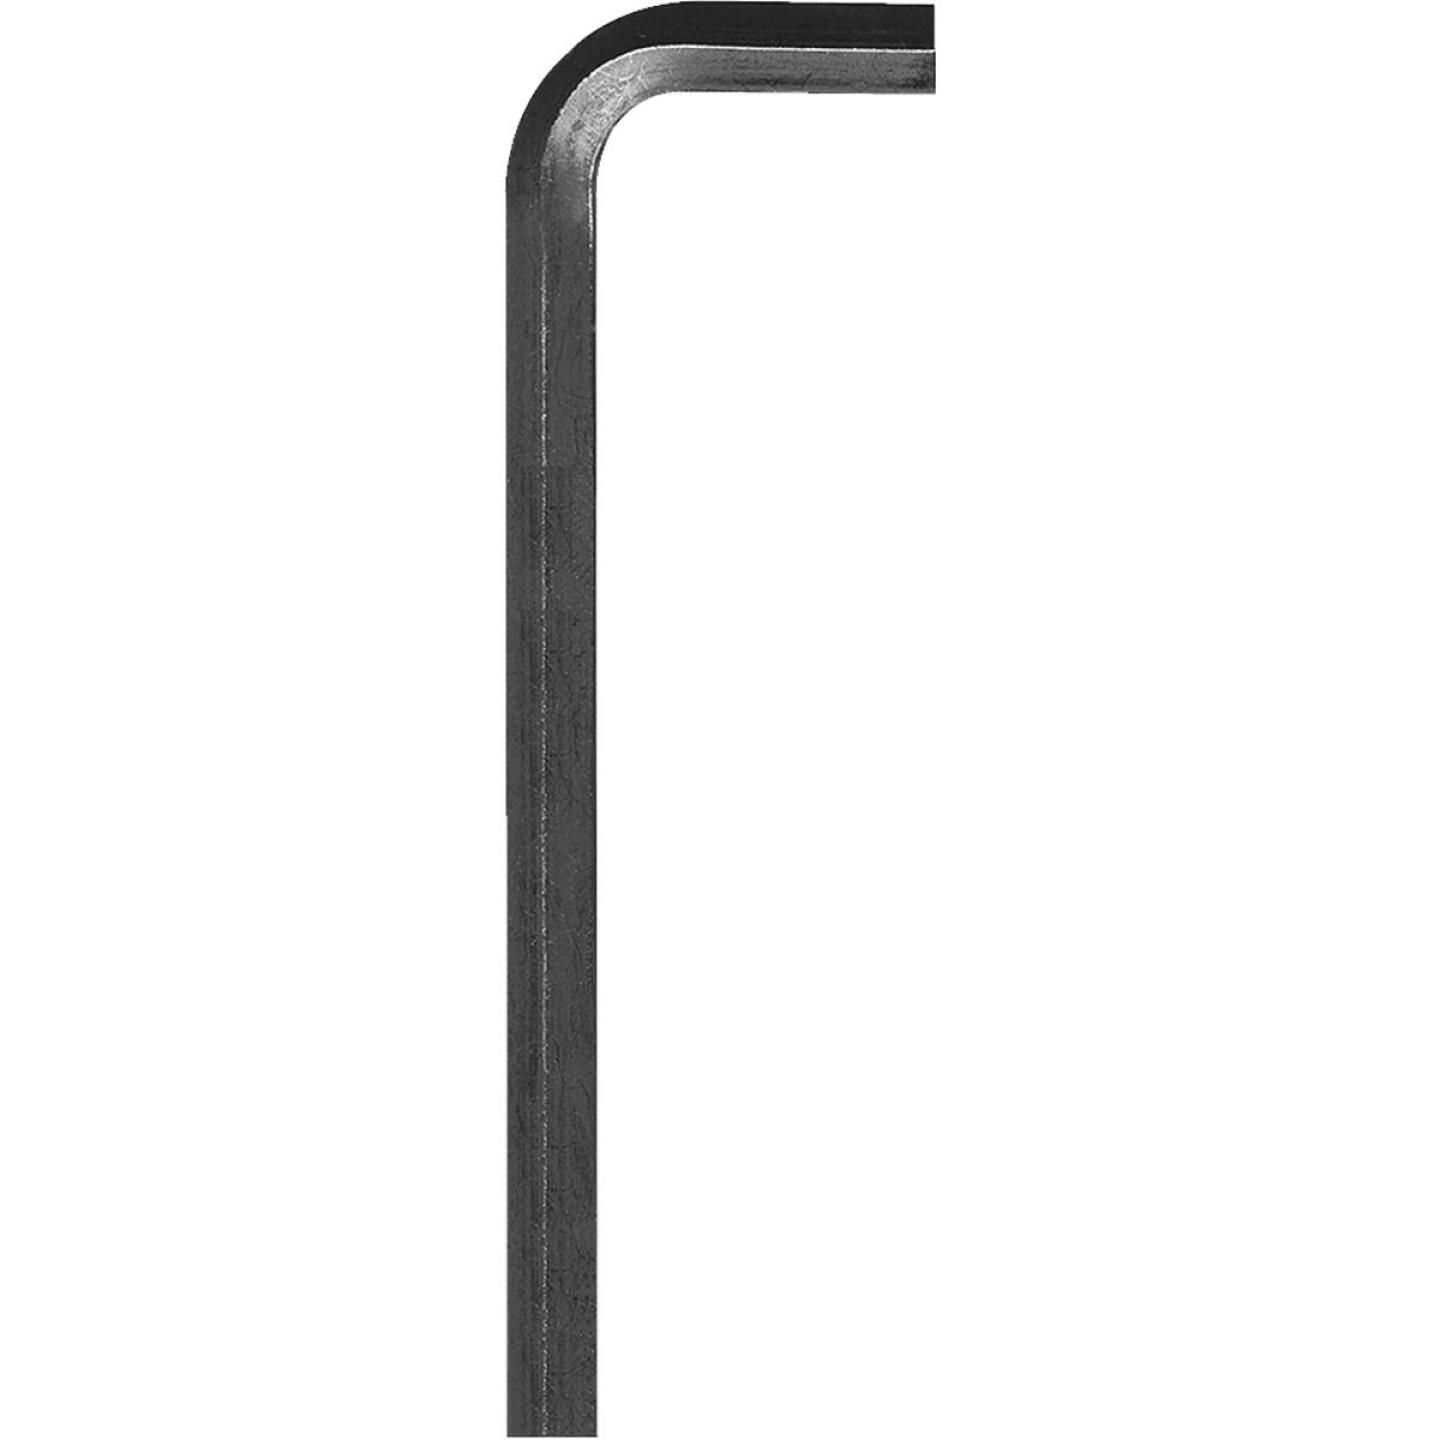 Eklind 1/16 In. Standard Hex Key Wrench Image 1